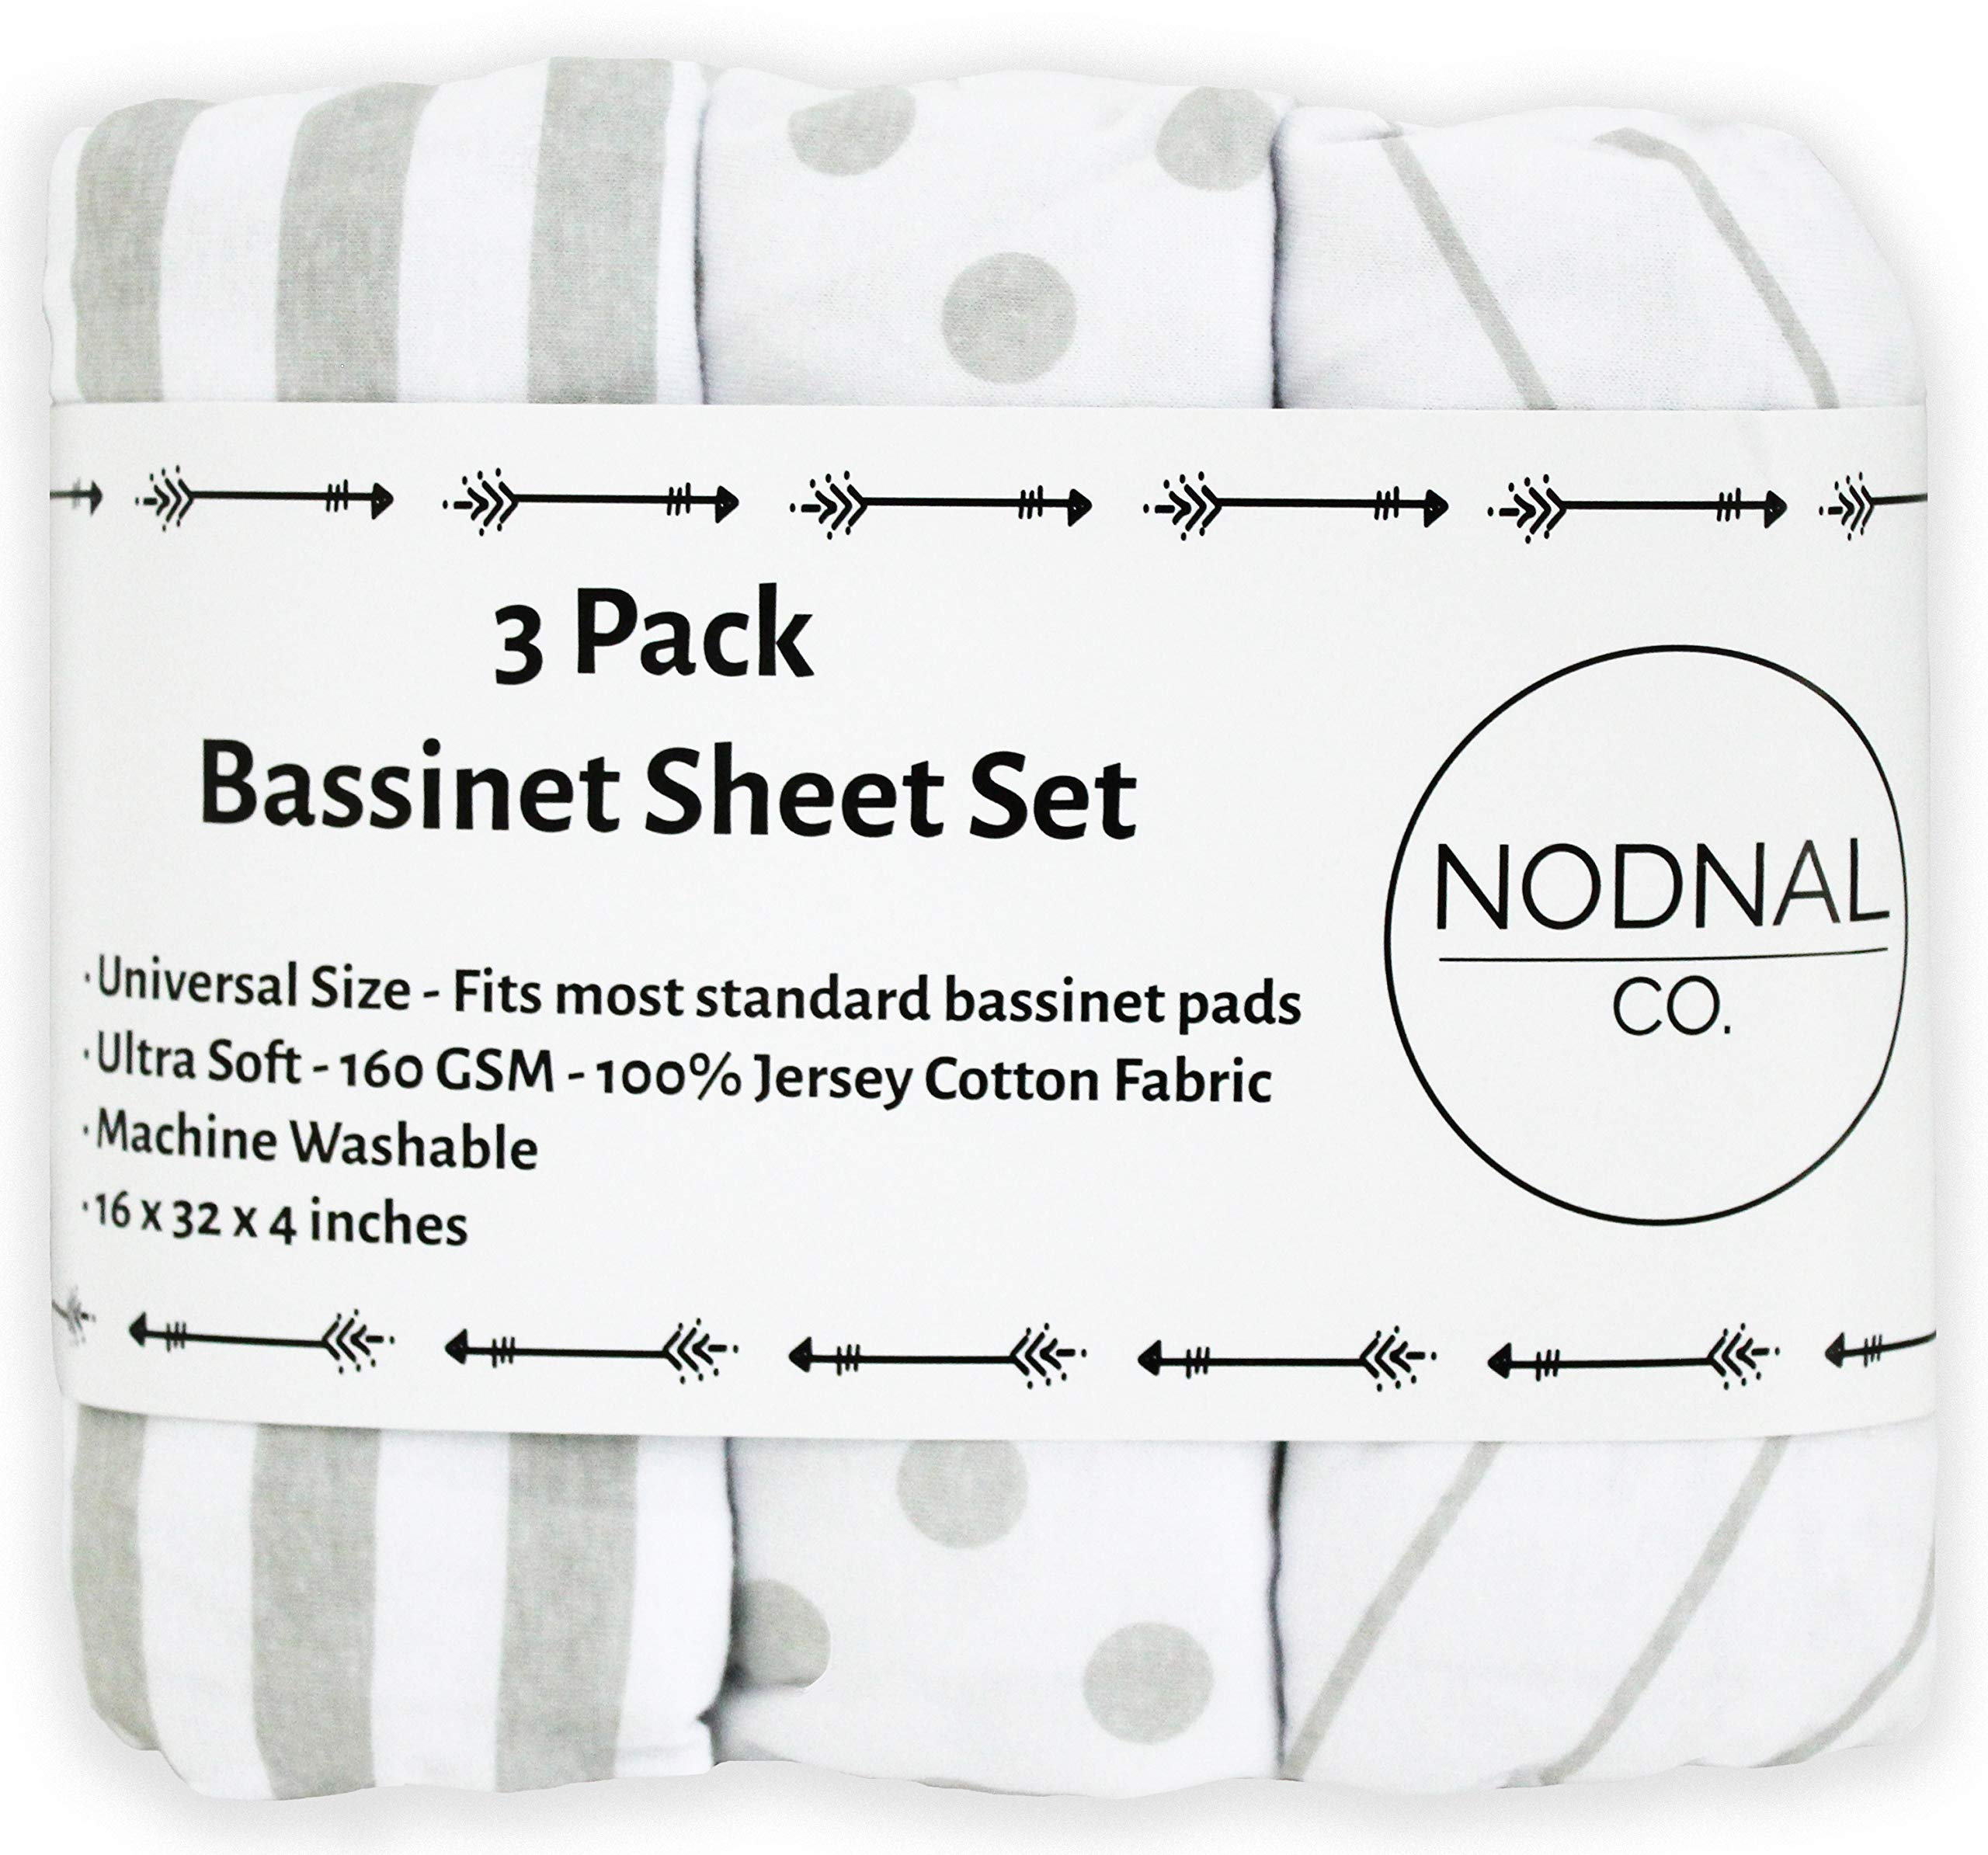 NODNAL CO. Bassinet Fitted Sheet Set 3 Pack 100% Jersey Gray Cotton for Baby Girl/Boy - Grey Chevron, Polka Dot and Stripe 160 GSM Sheets by NODNAL CO.